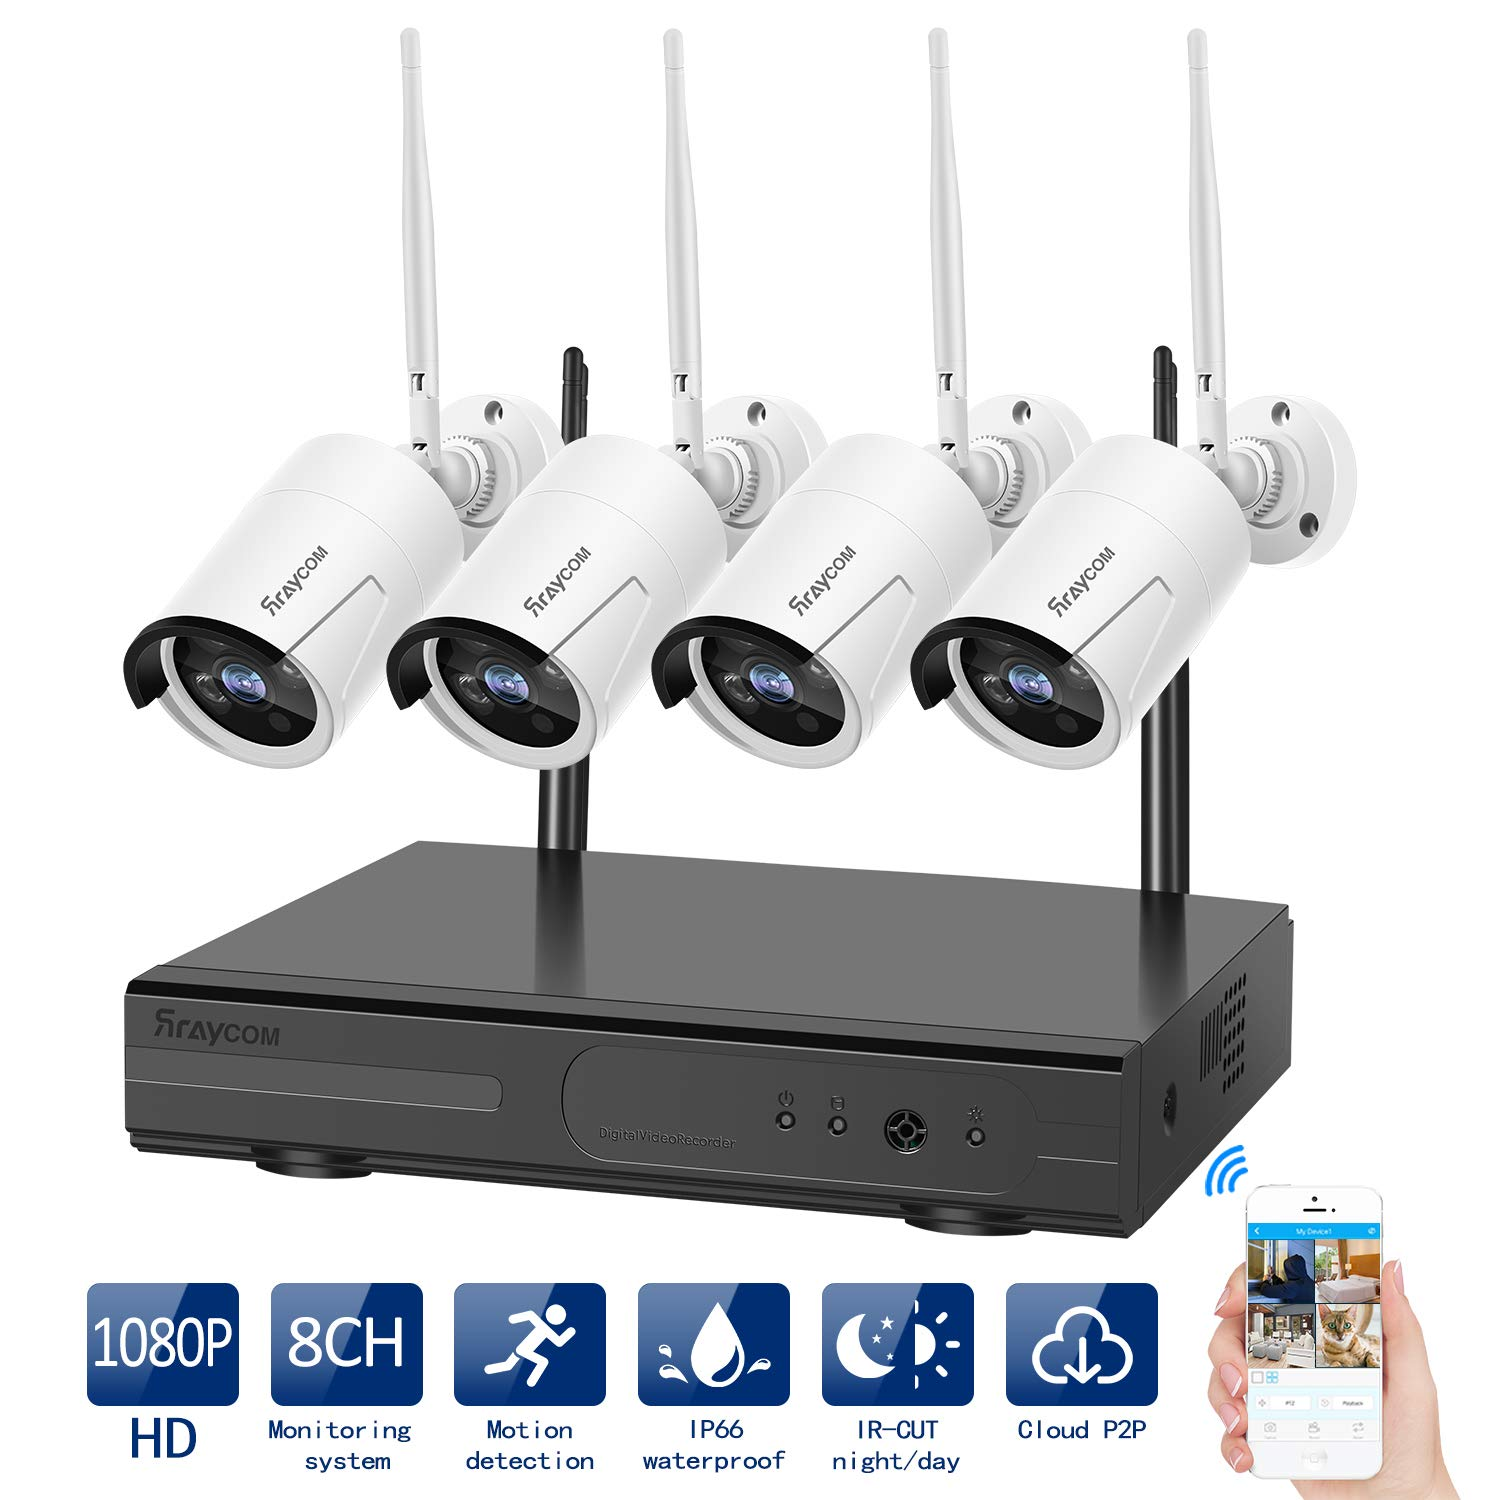 Rraycom Security Camera System Wireless,8CH 1080P NVR with 4Pcs 960P 1.3MP Outdoor/Indoor WiFi Surveillance IP66 Weatherproof IP Cameras,65ft Night Vision, App Remote View, P2P,Plug Play,No HDD by Rraycom